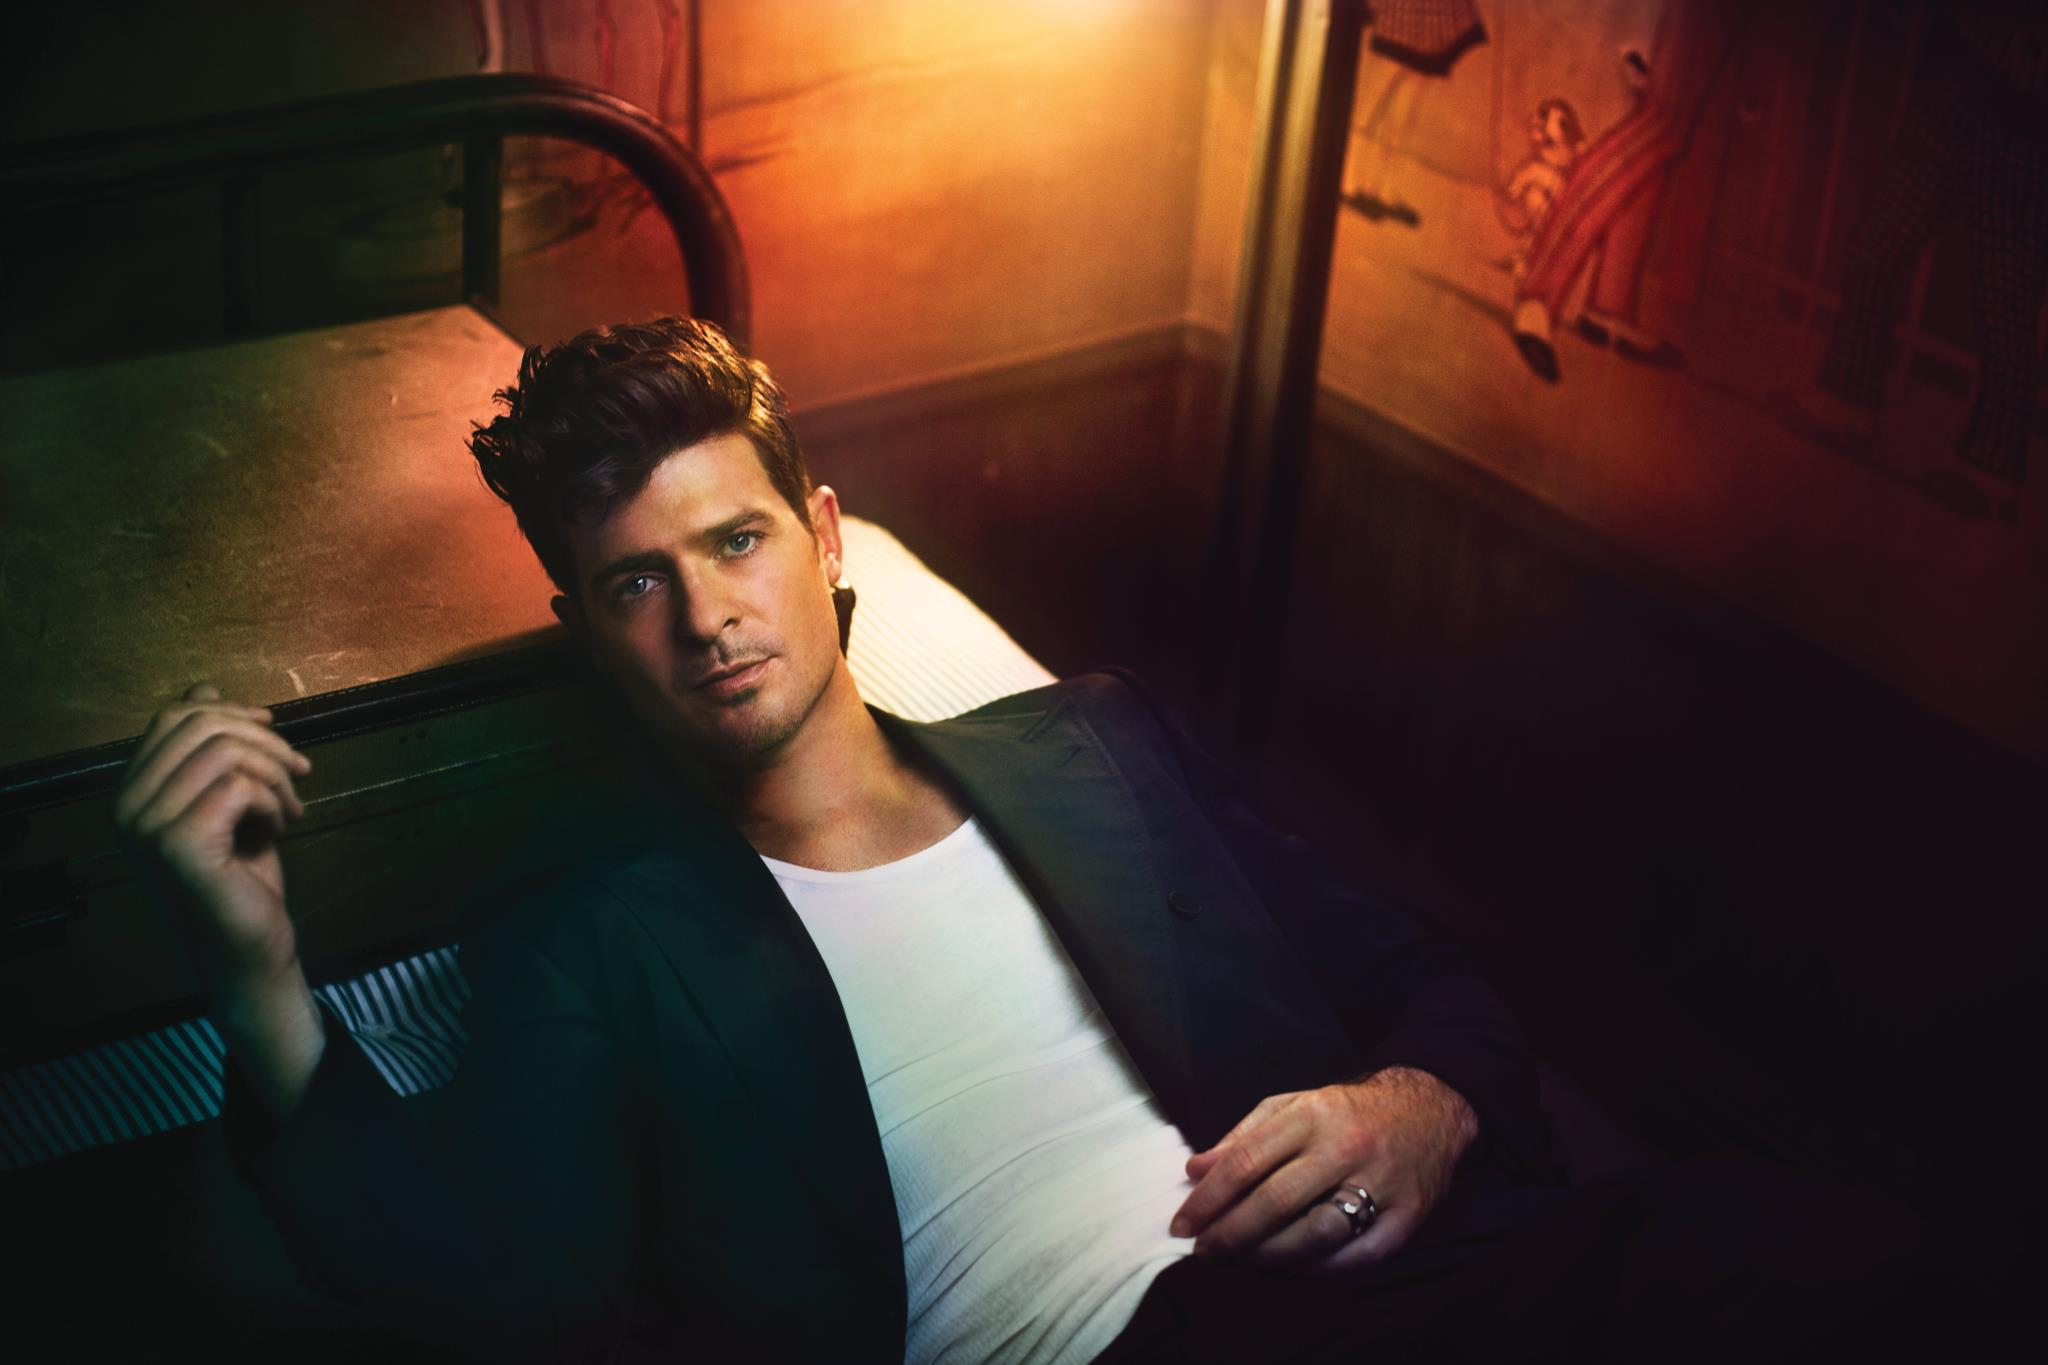 Robin Thicke Arrested For Marijuana In Manhattan, NYC